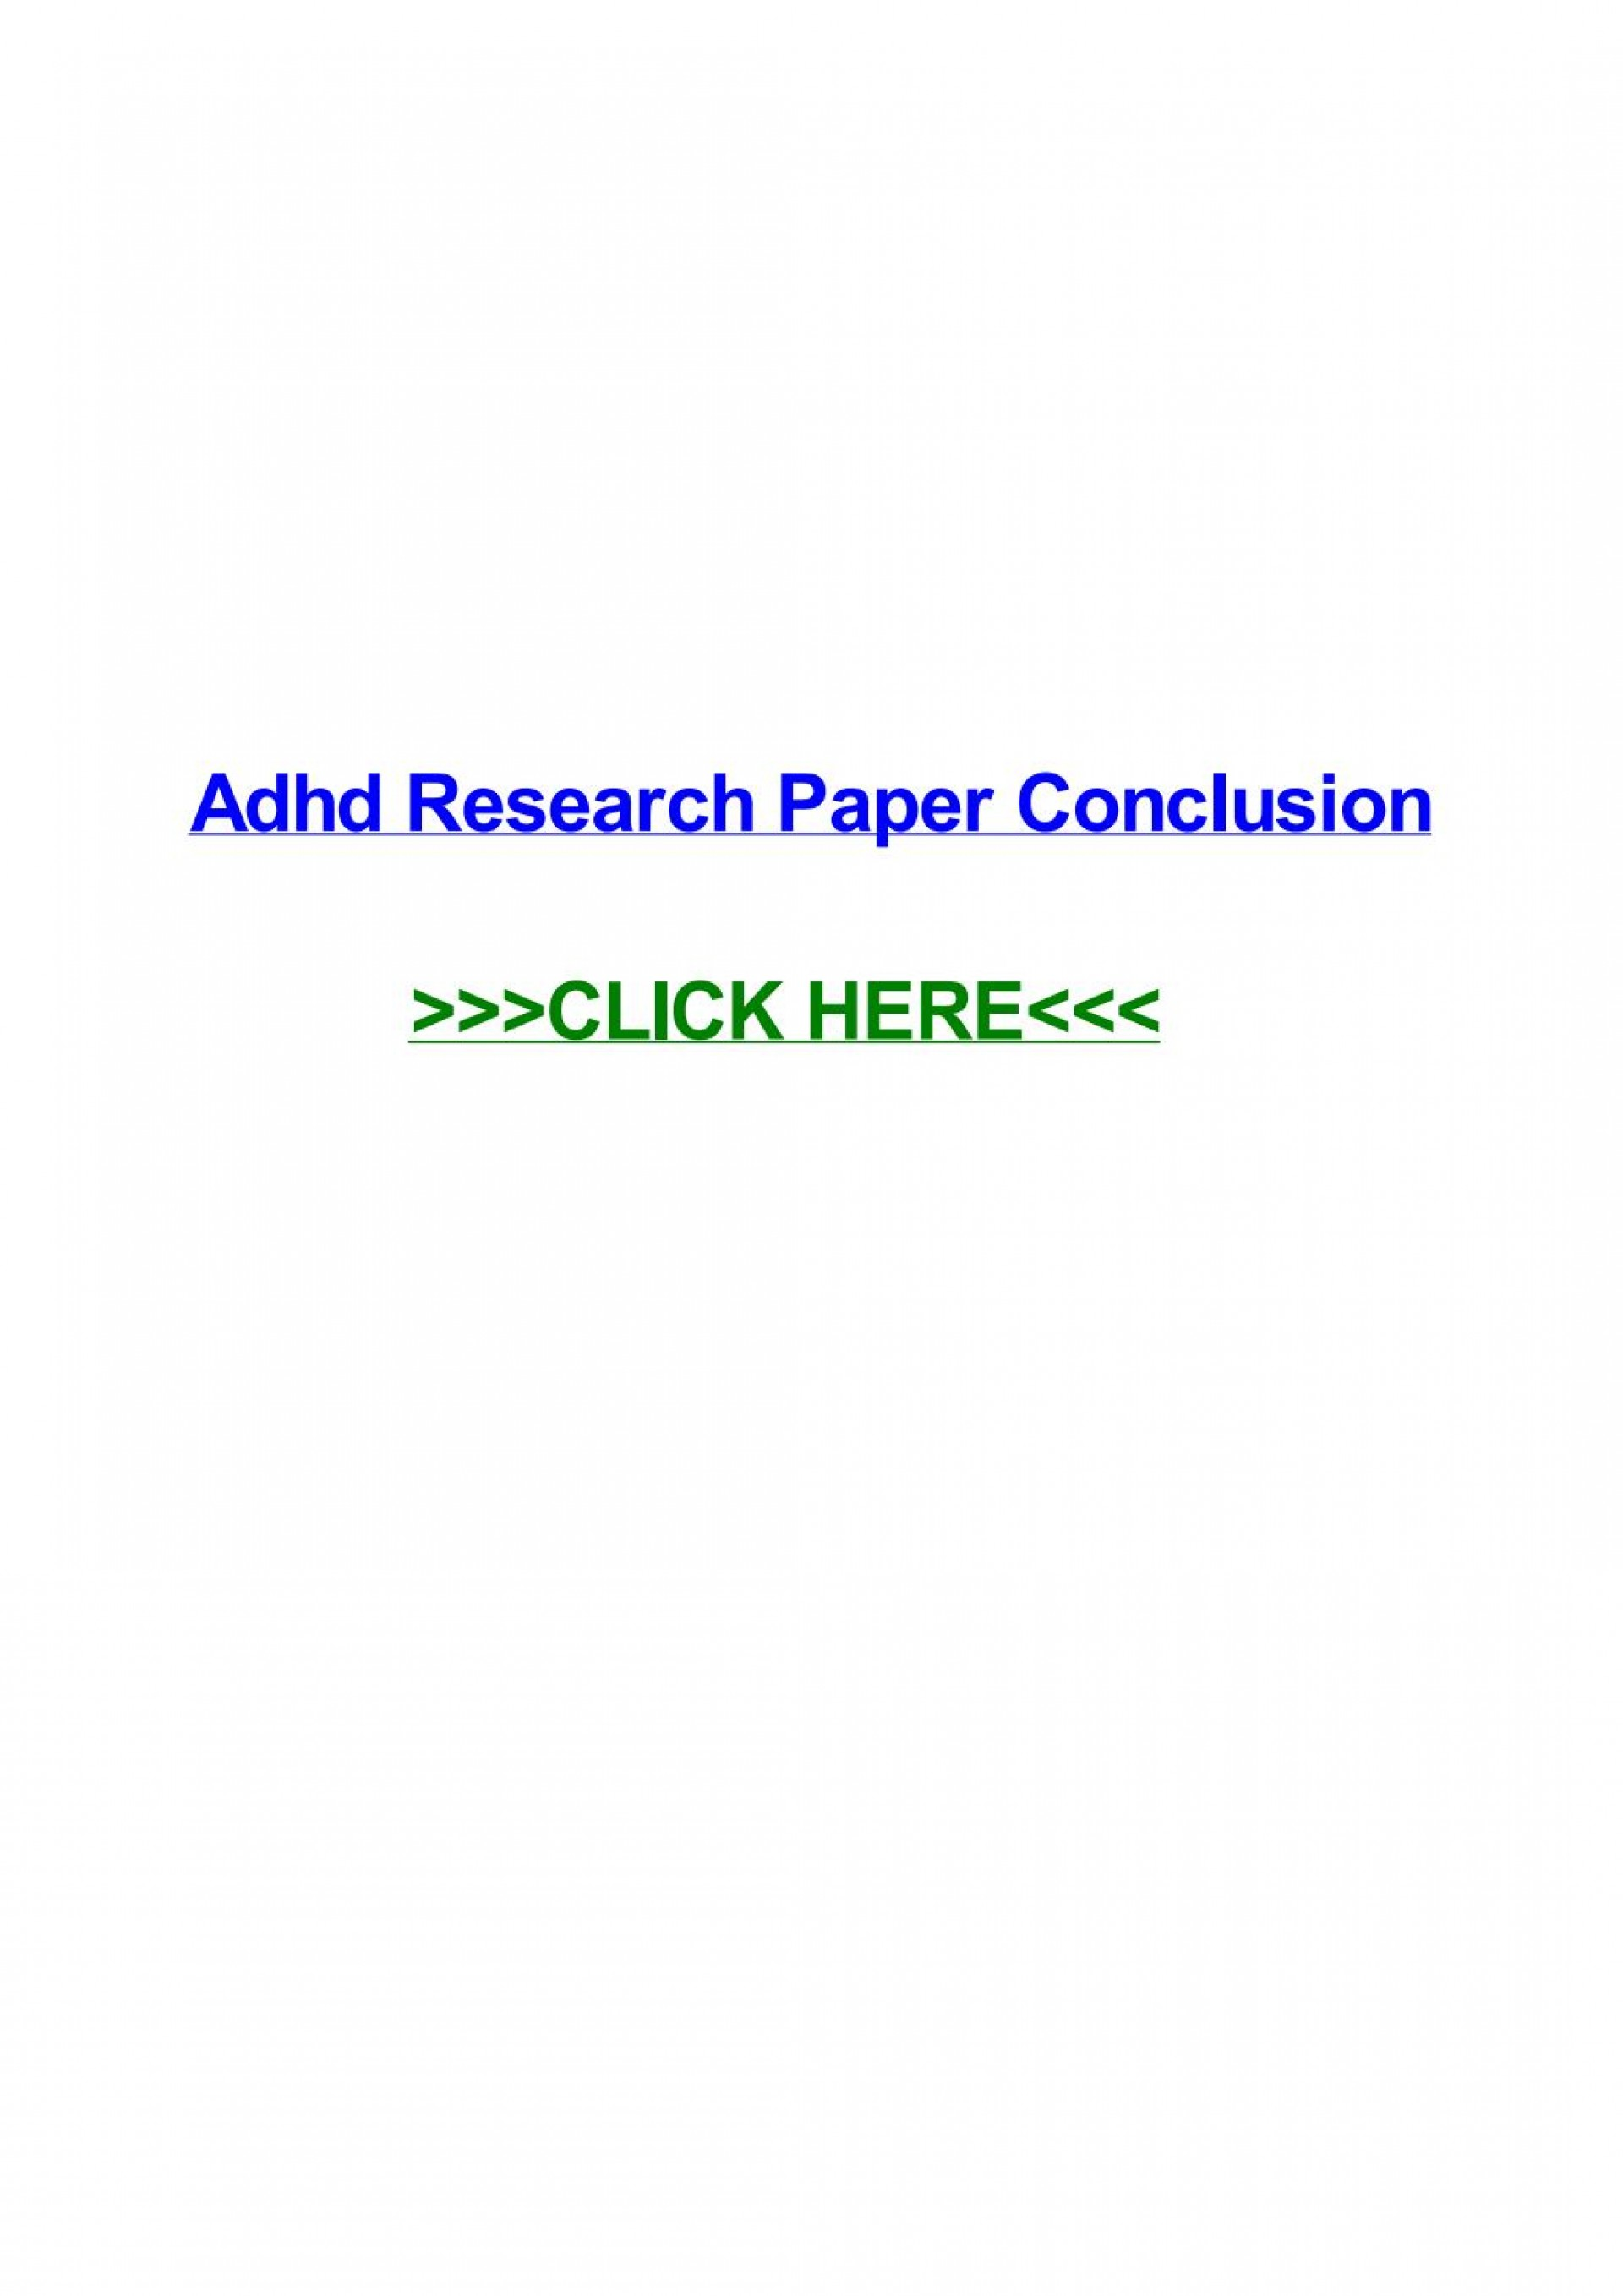 009 Page 1 Adhd Research Paper Impressive Conclusion 1920